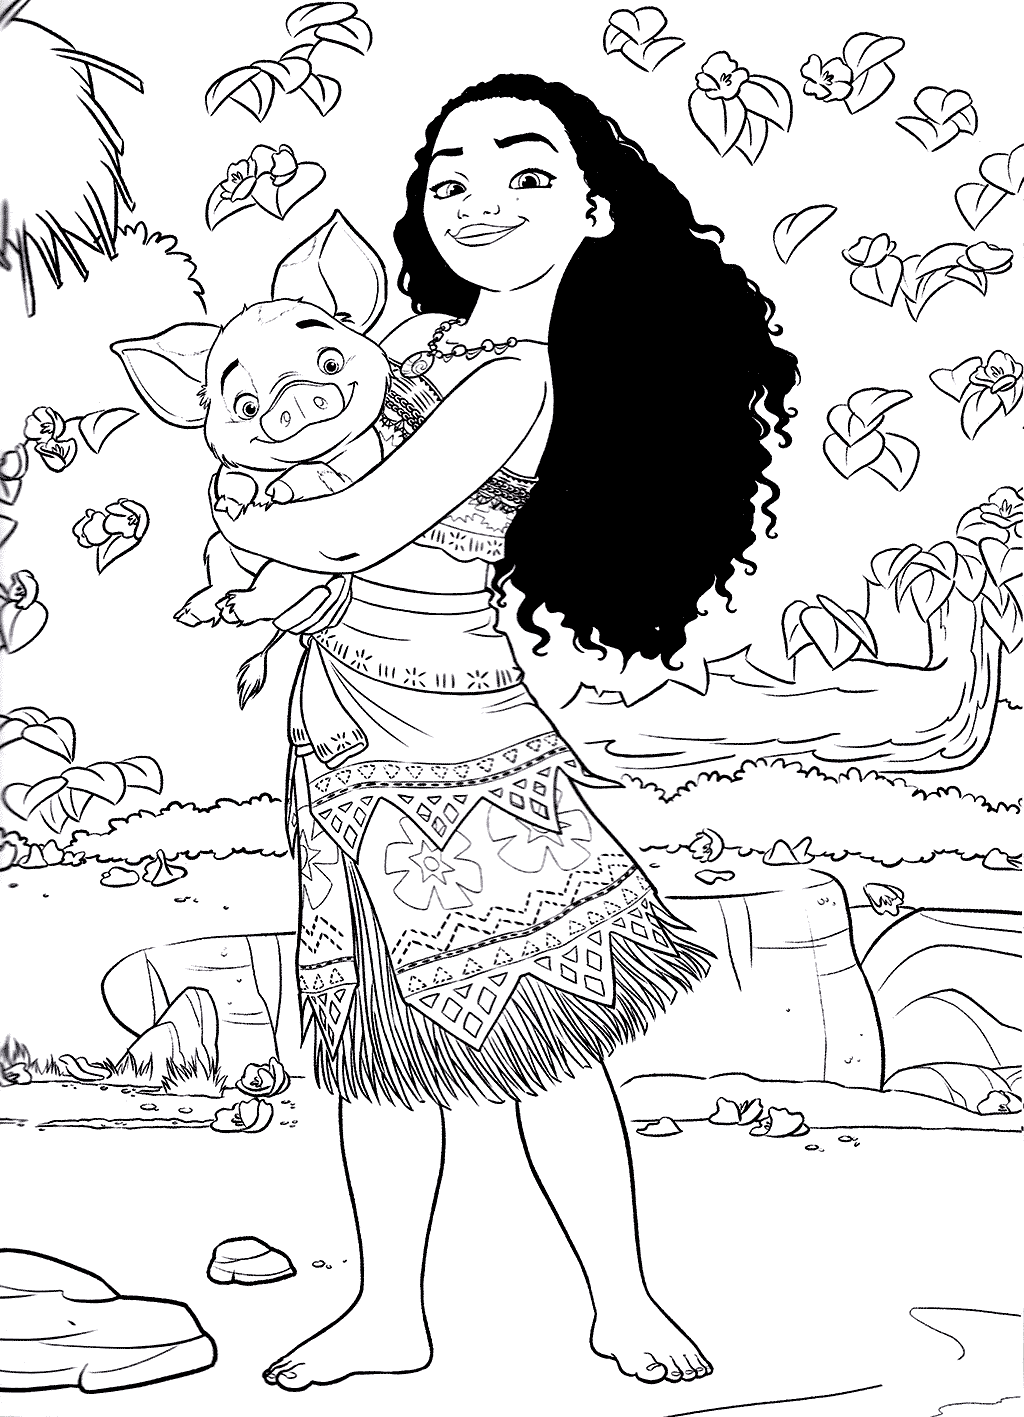 beautiful moana coloring page to print and color - Coloring Page Moana